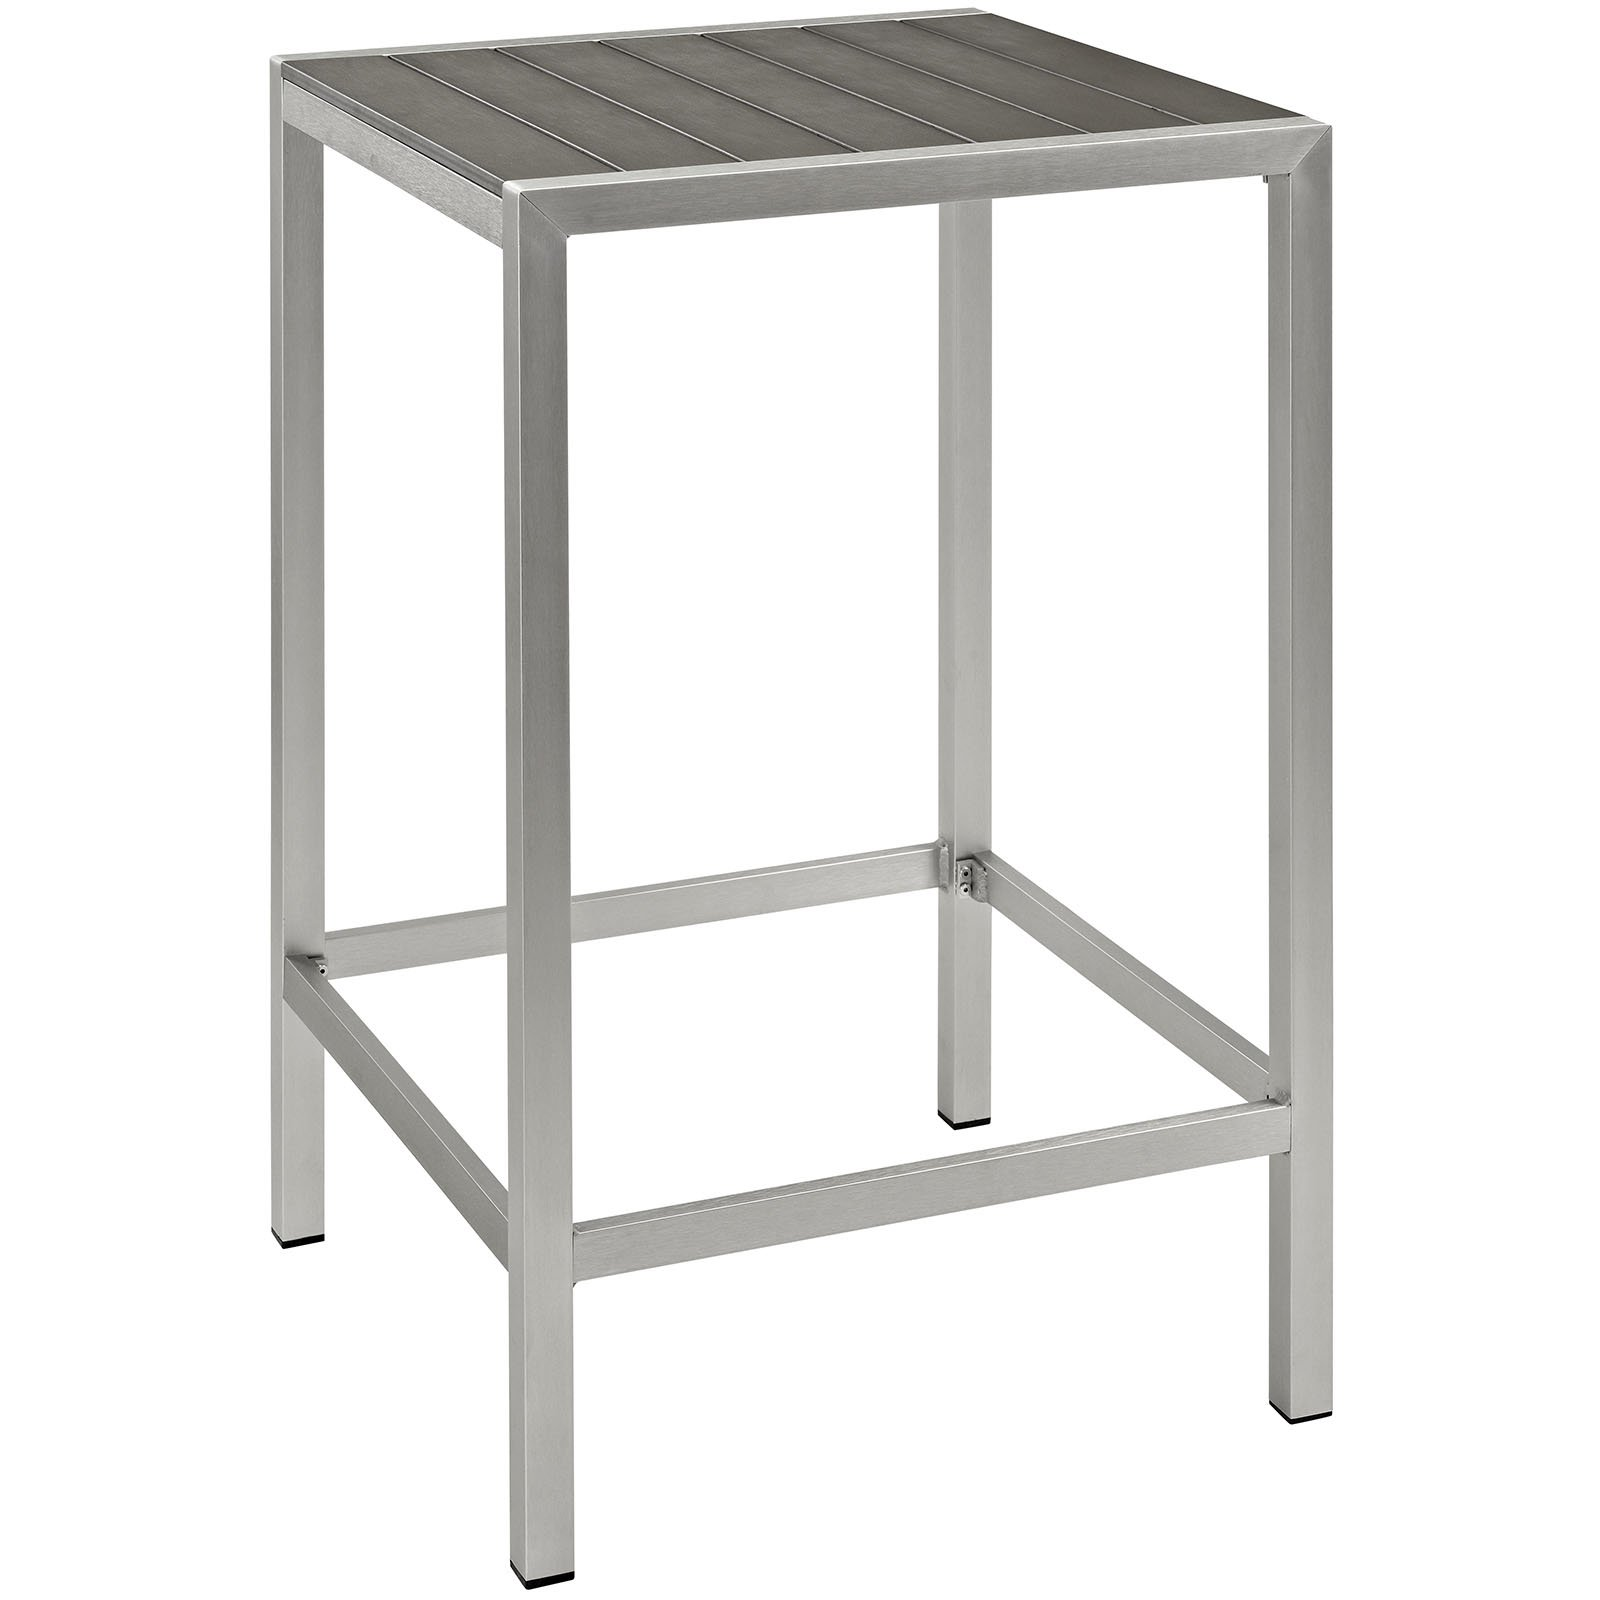 Modway Shore Aluminum Outdoor Patio Square Bar Table in Silver Gray